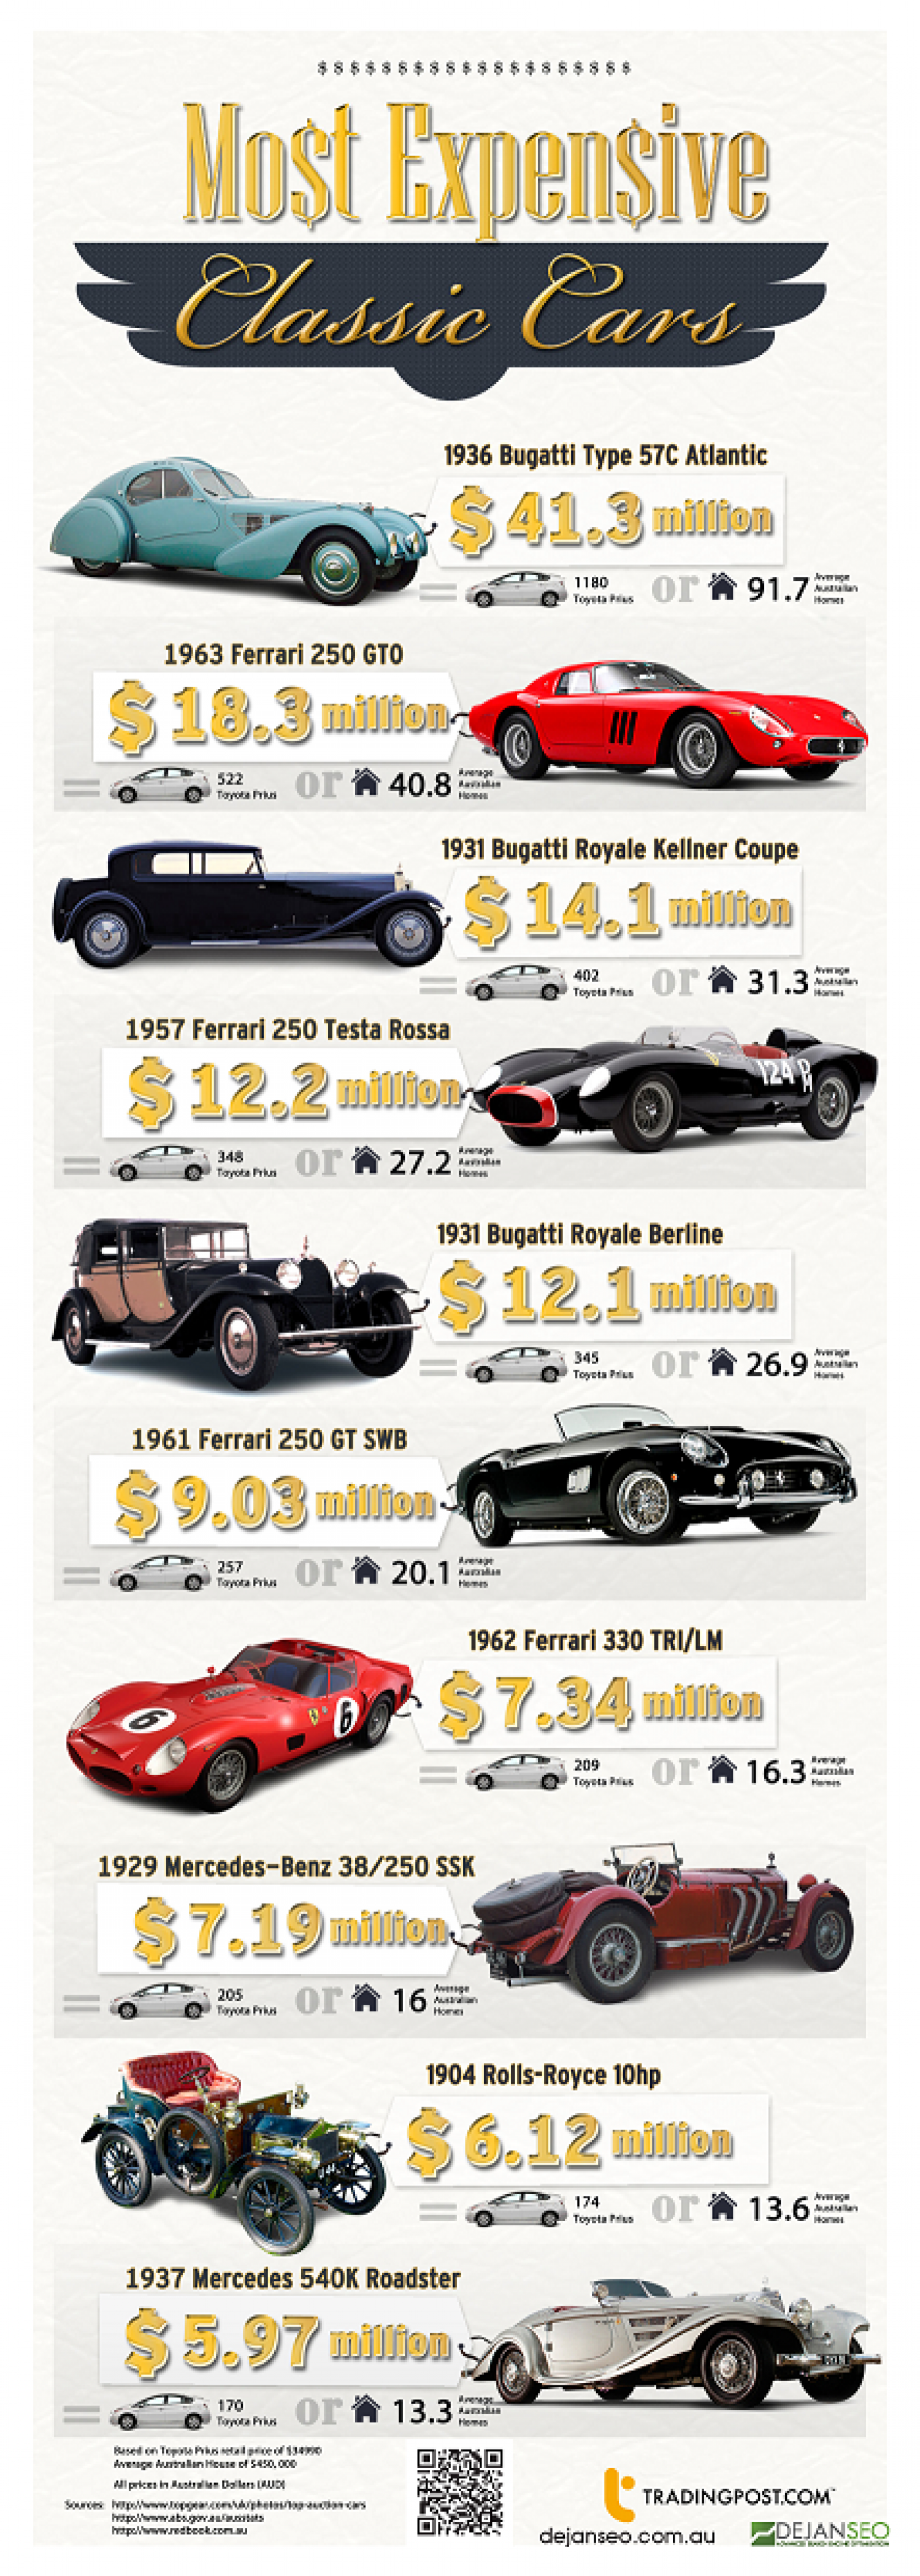 Most Expensive Classic Cars Infographic